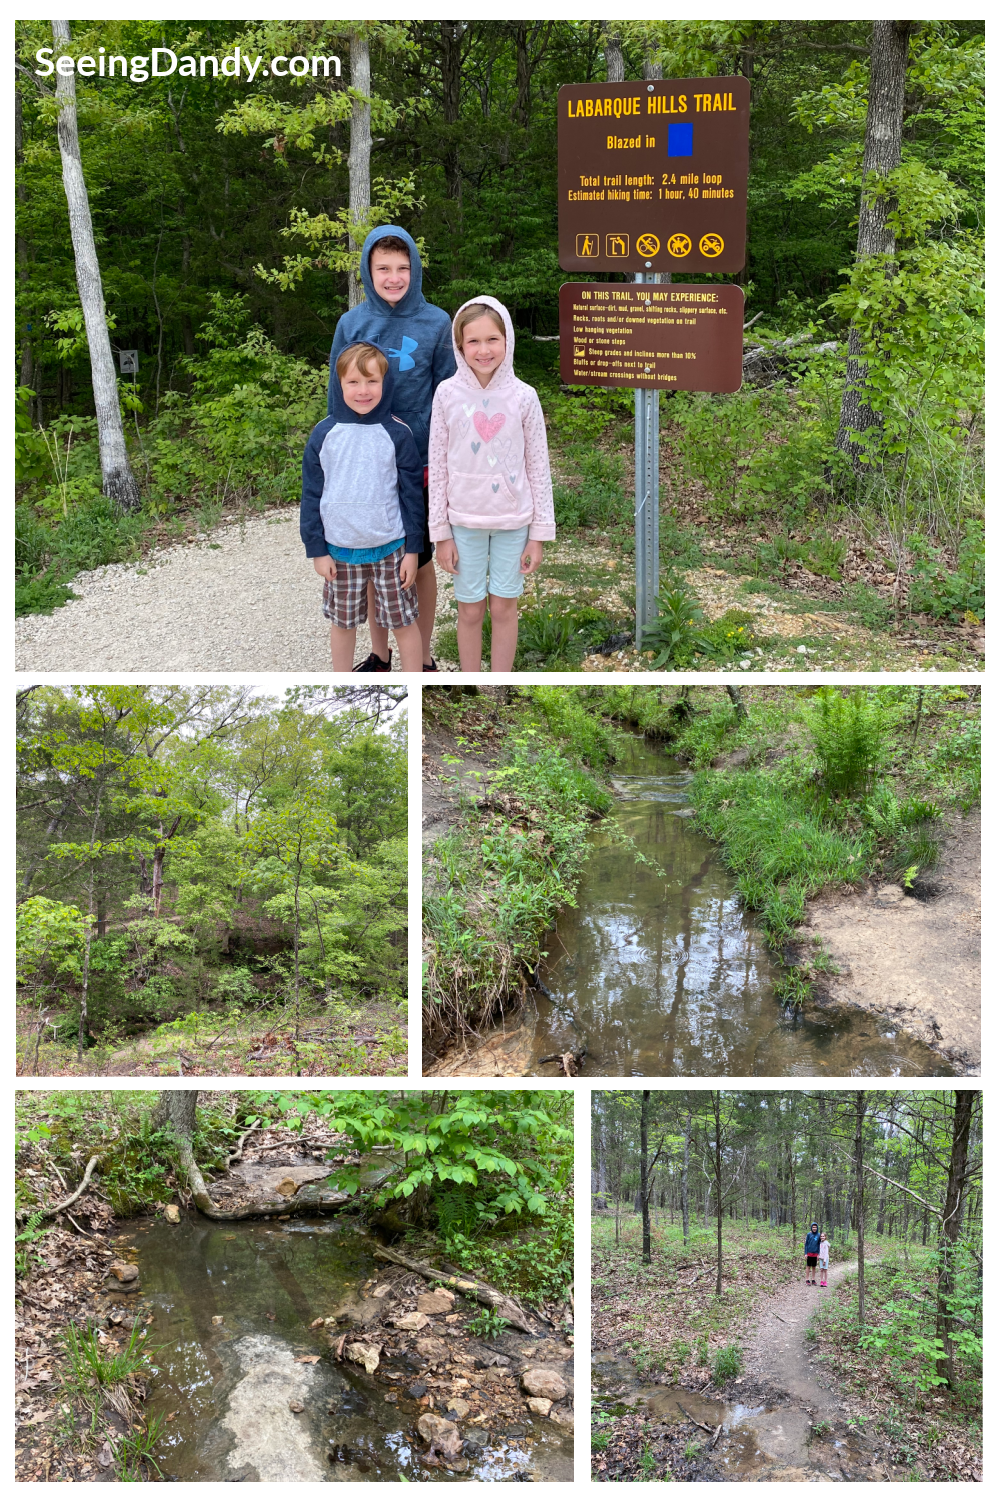 Labarque Hills Trail, family hike, st. louis family, hiking adventures